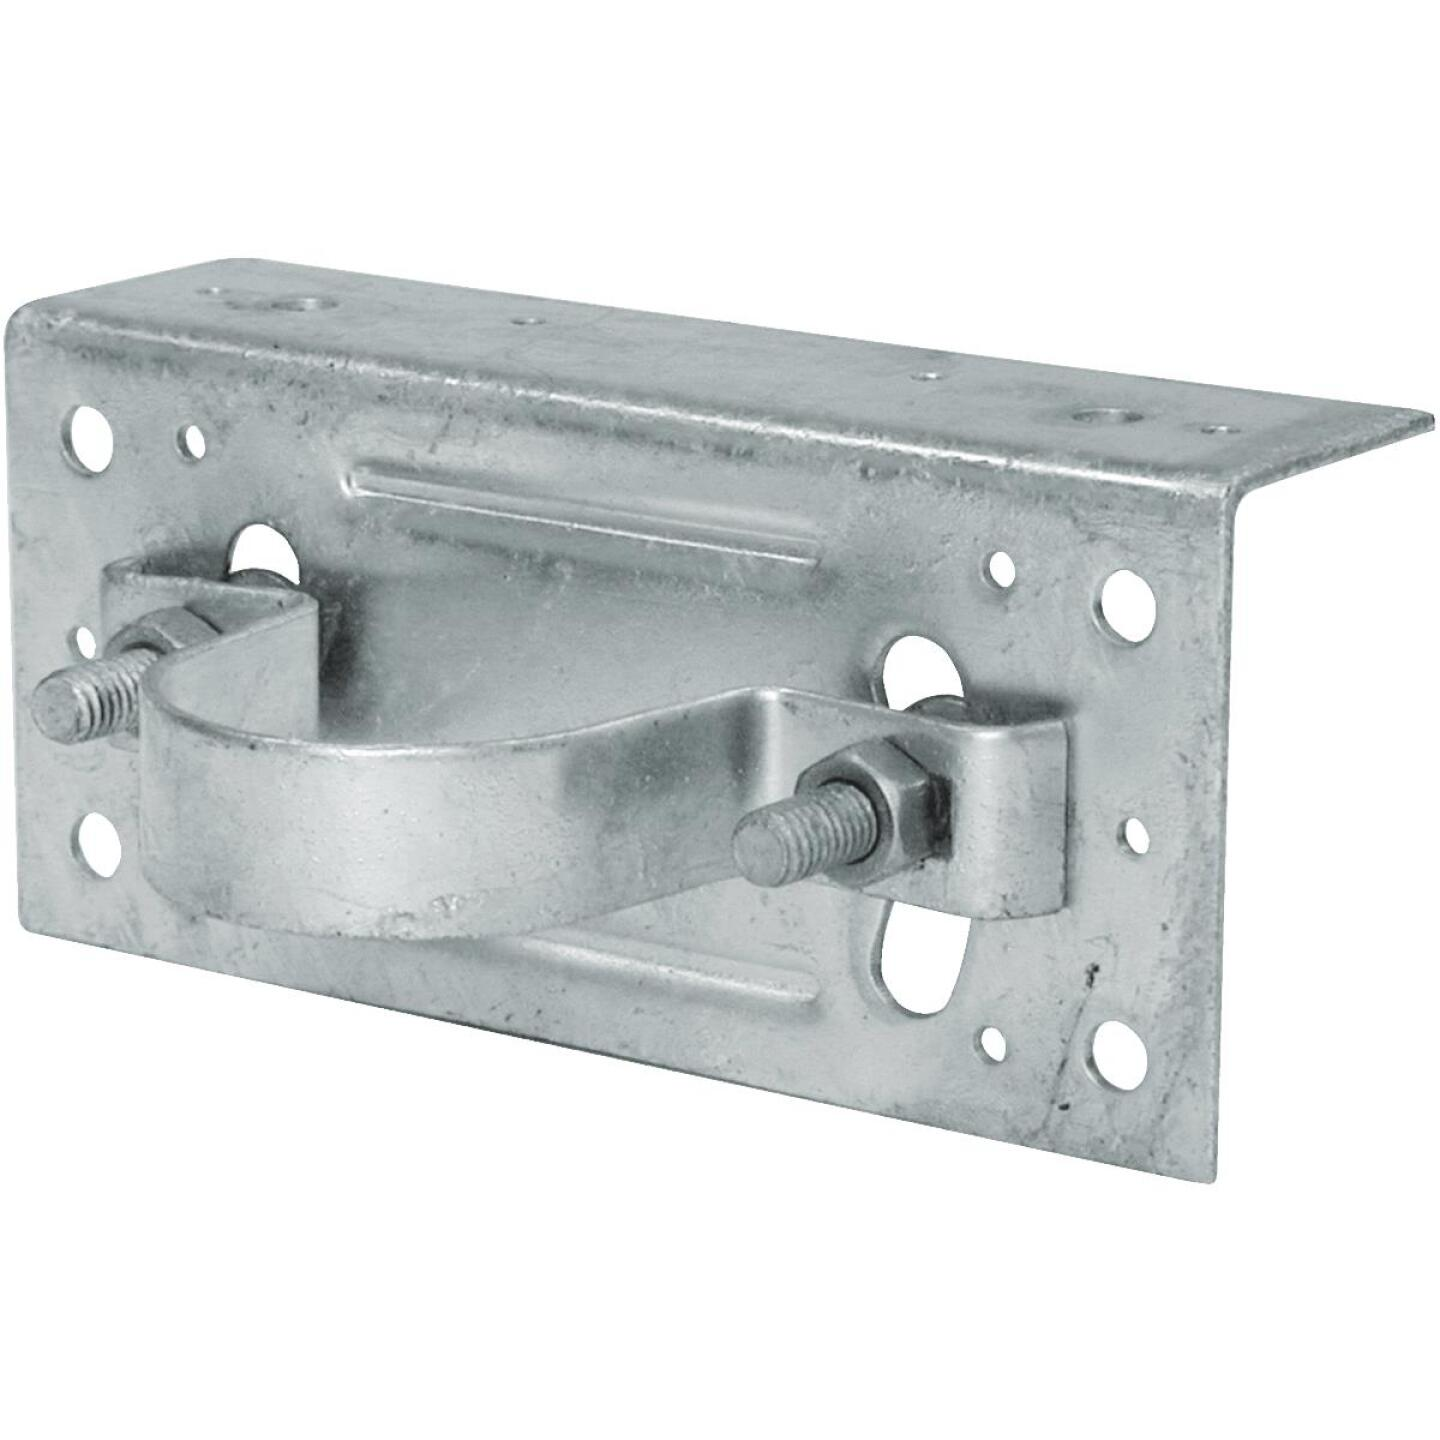 Midwest Air Tech Adjustable 2-3/8 in. Steel Fence Post Adapter Clamp Image 1